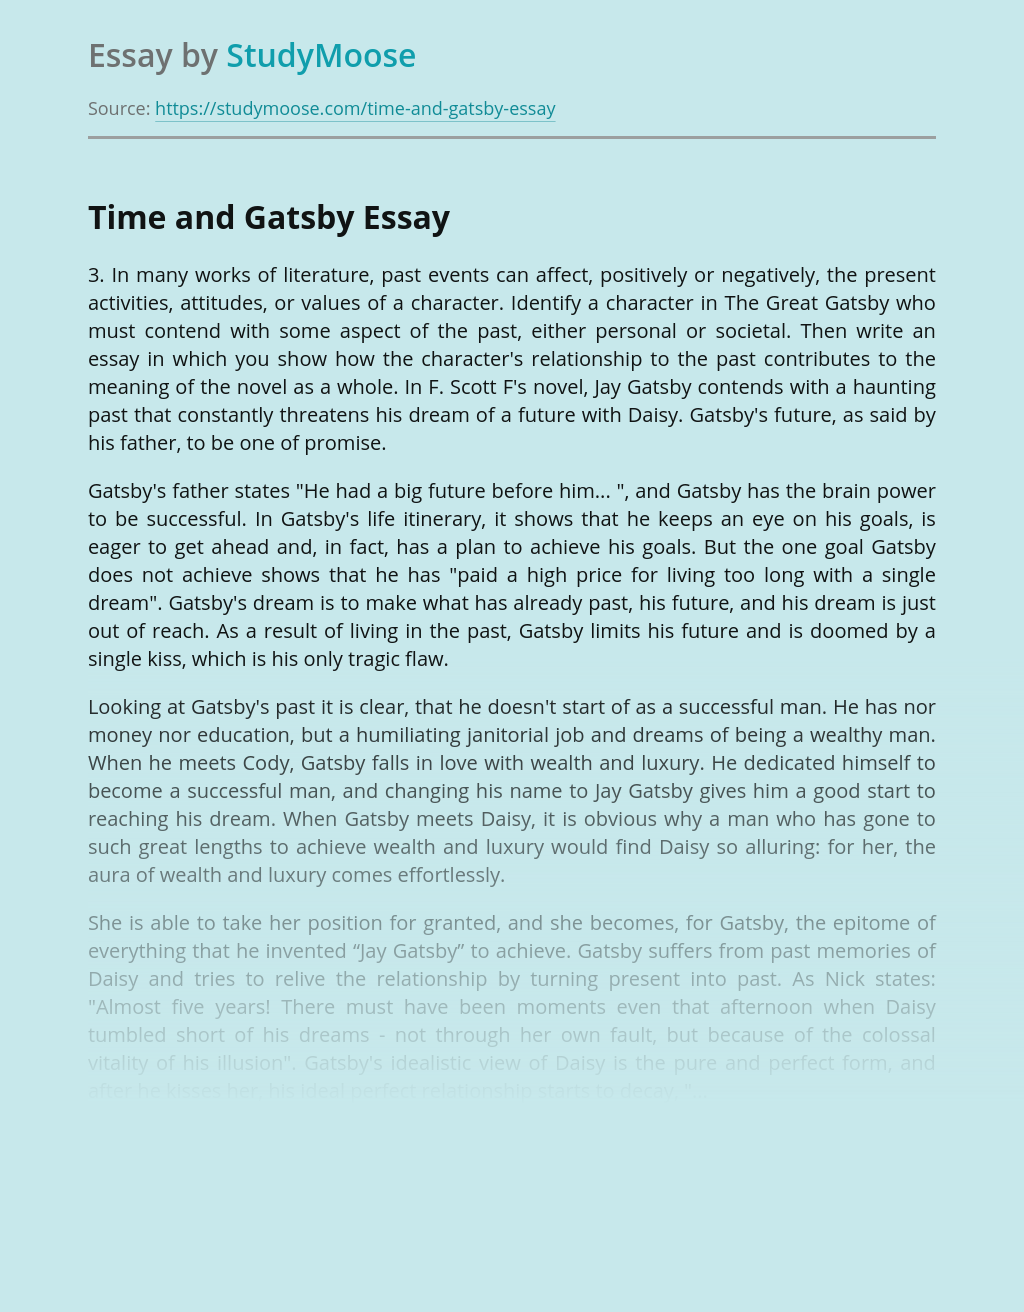 Time and Gatsby